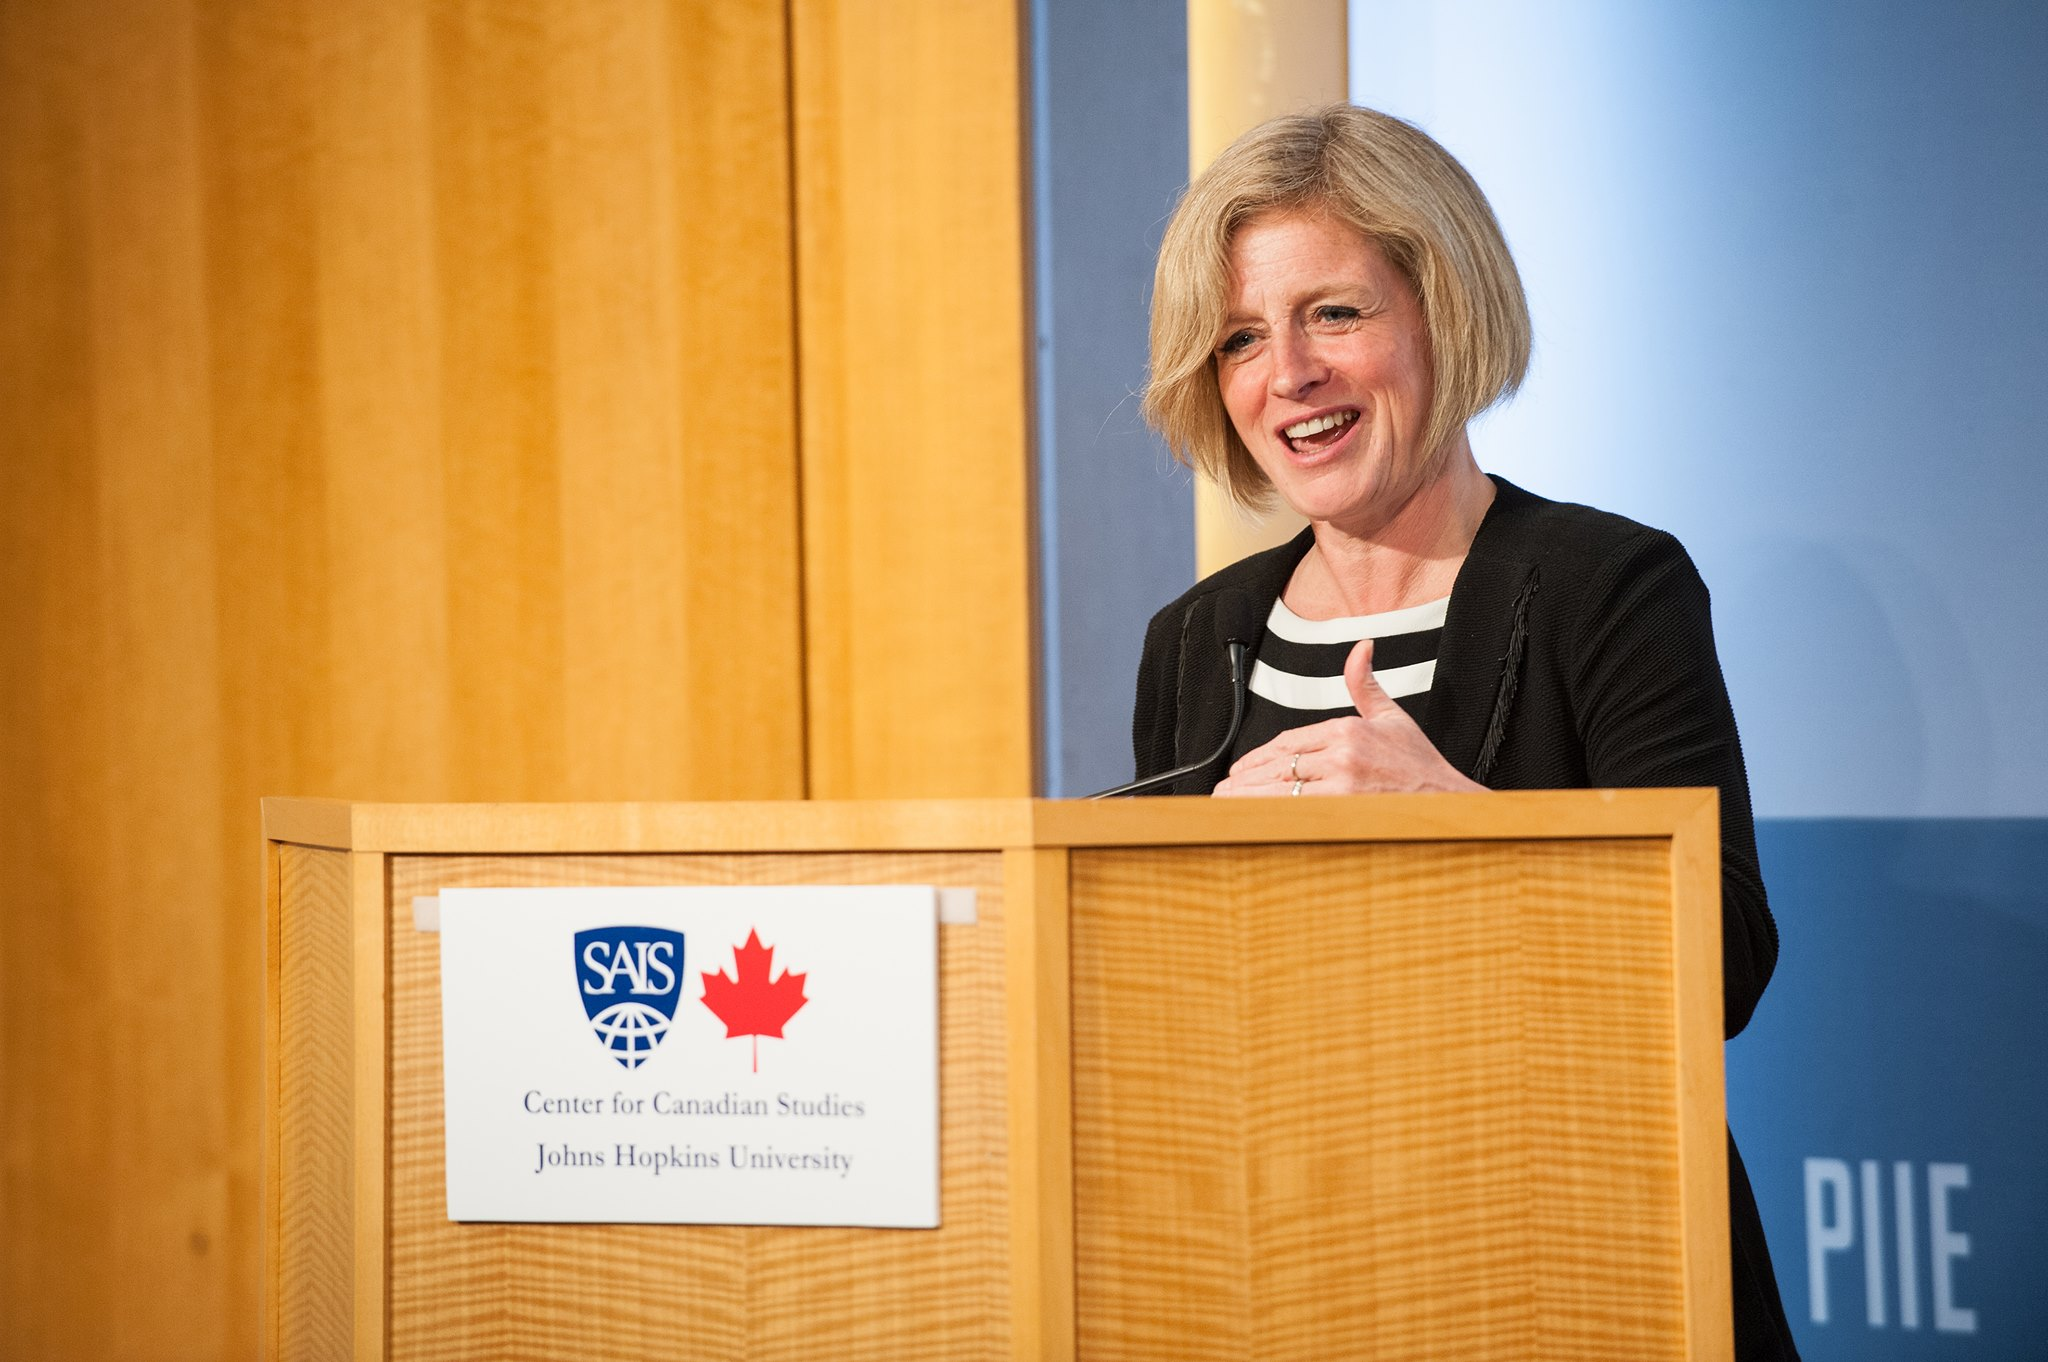 """I'm sure you've heard a lot about our province, especially the oilsands,"" Notley (in photo) told an audience from Johns Hopkins University on Thursday. (Photo: Rachel Notley/Facebook)"